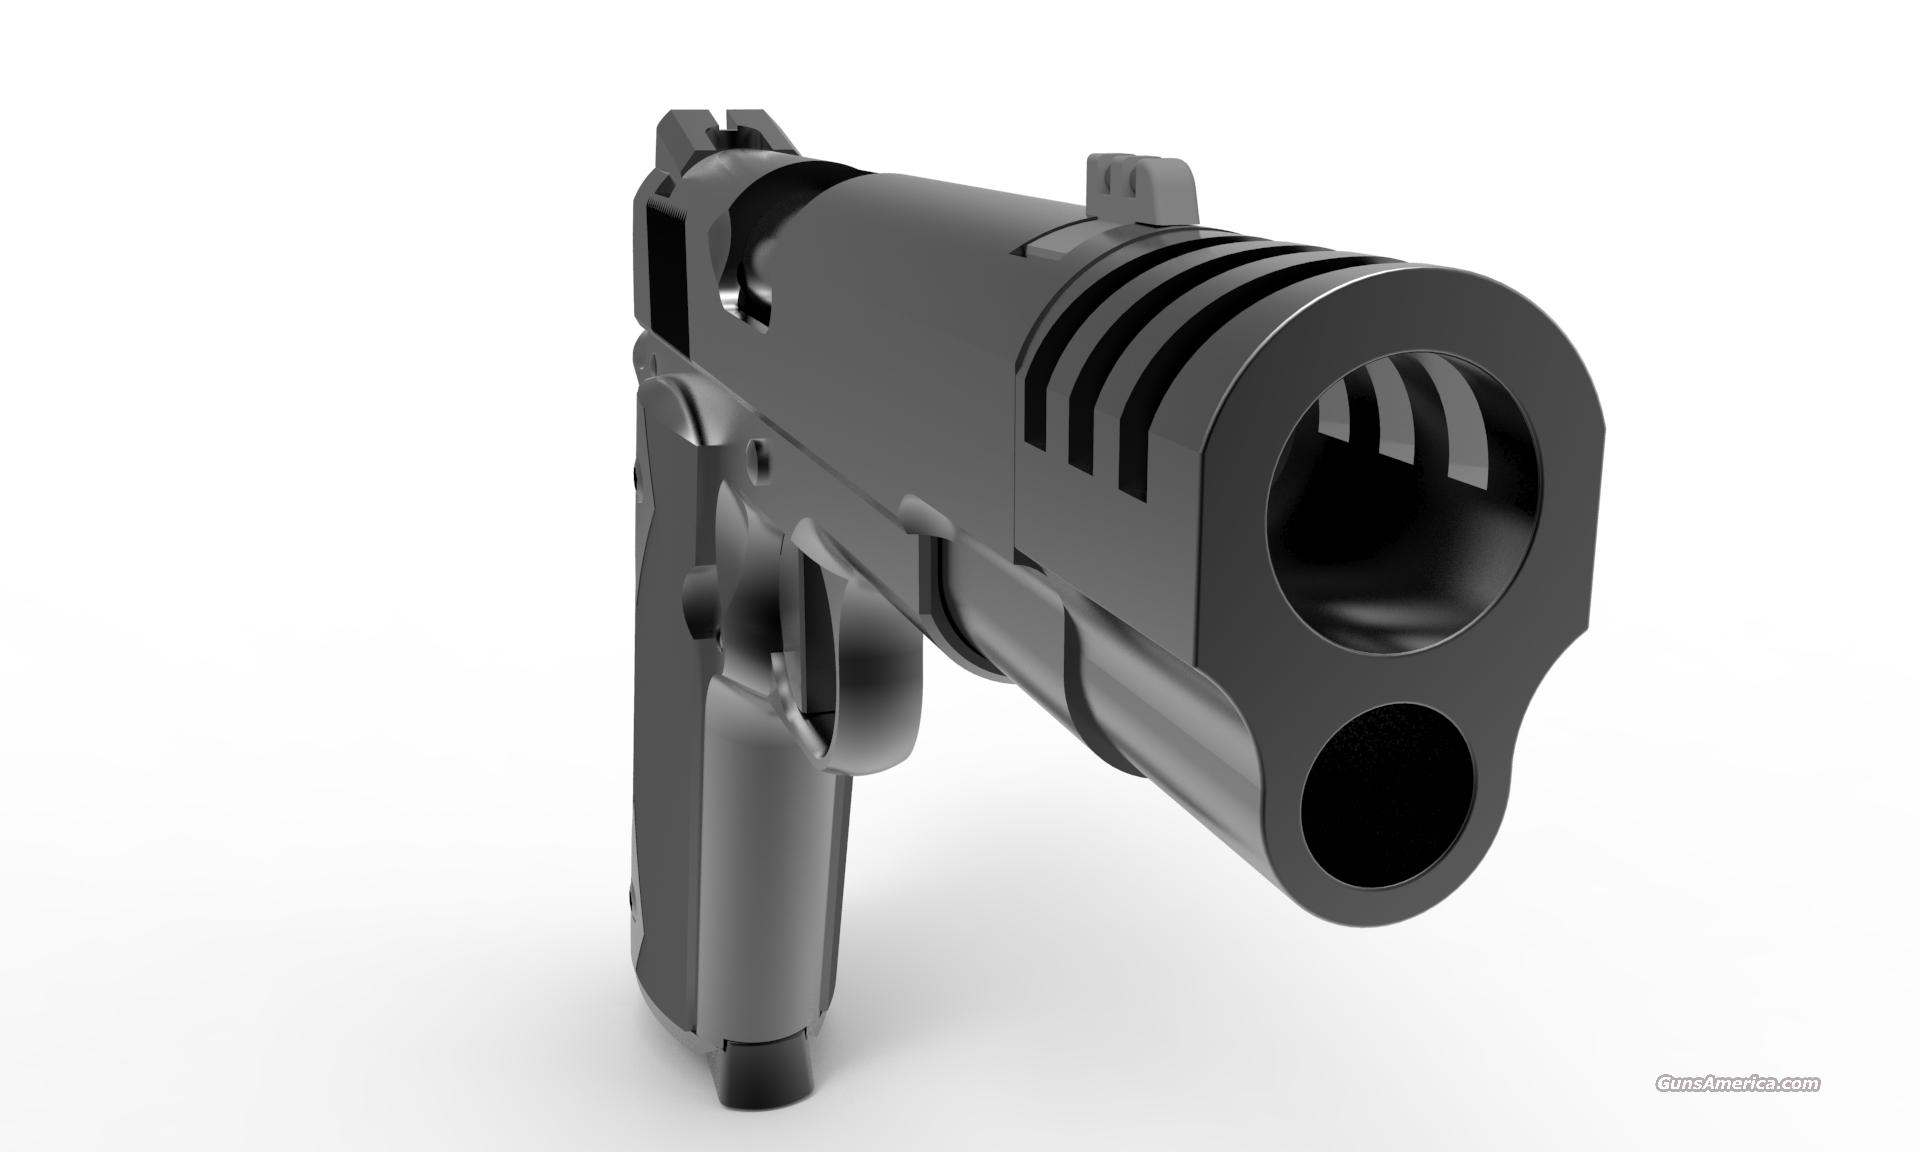 Acp muzzle brake stainless steel compe for sale